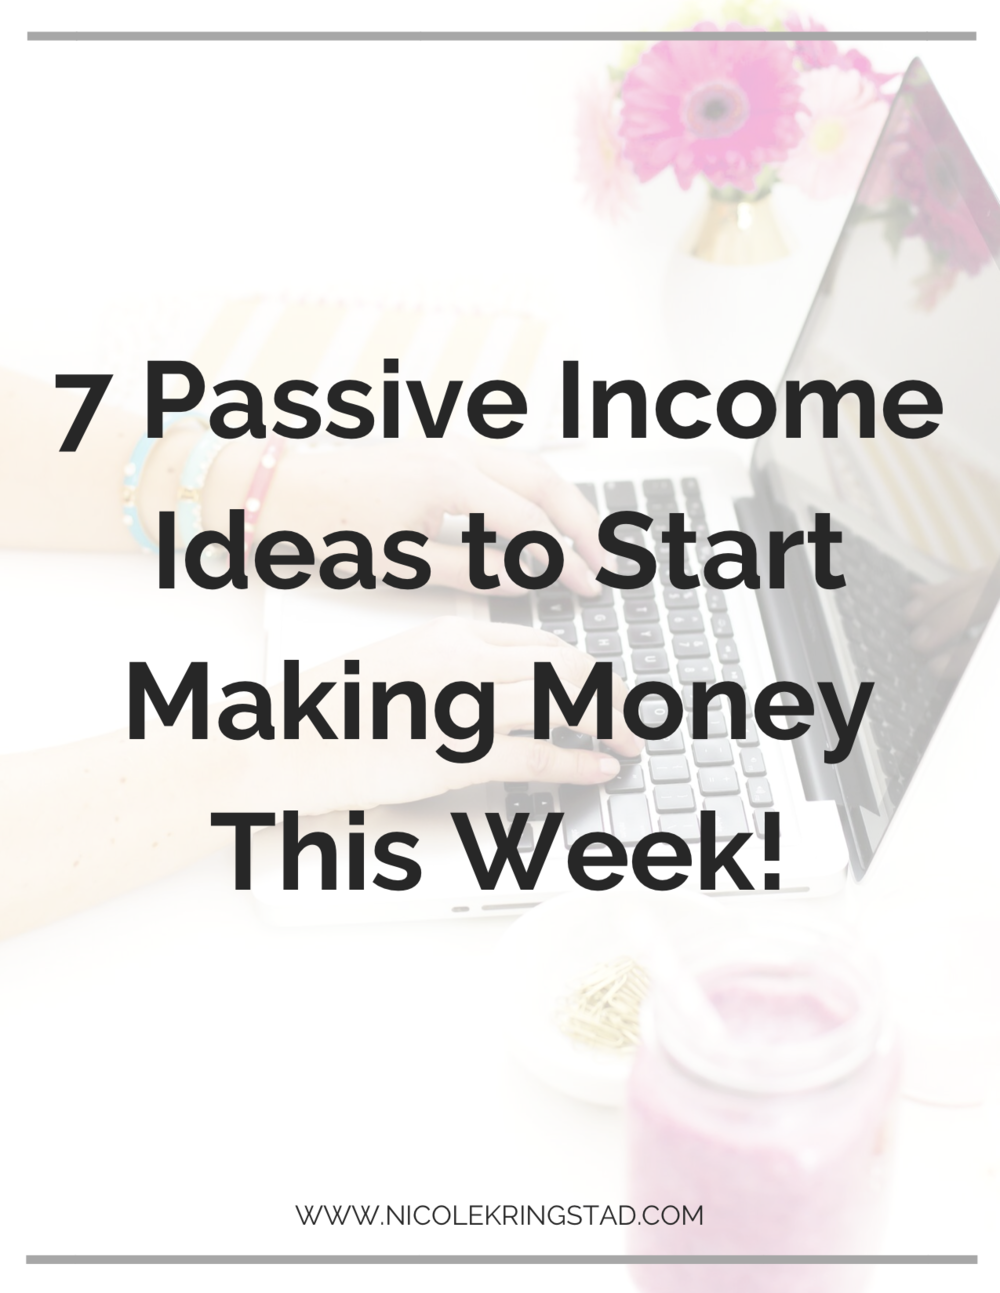 7 Passive Income Ideas to Start Making Money This Week!.png